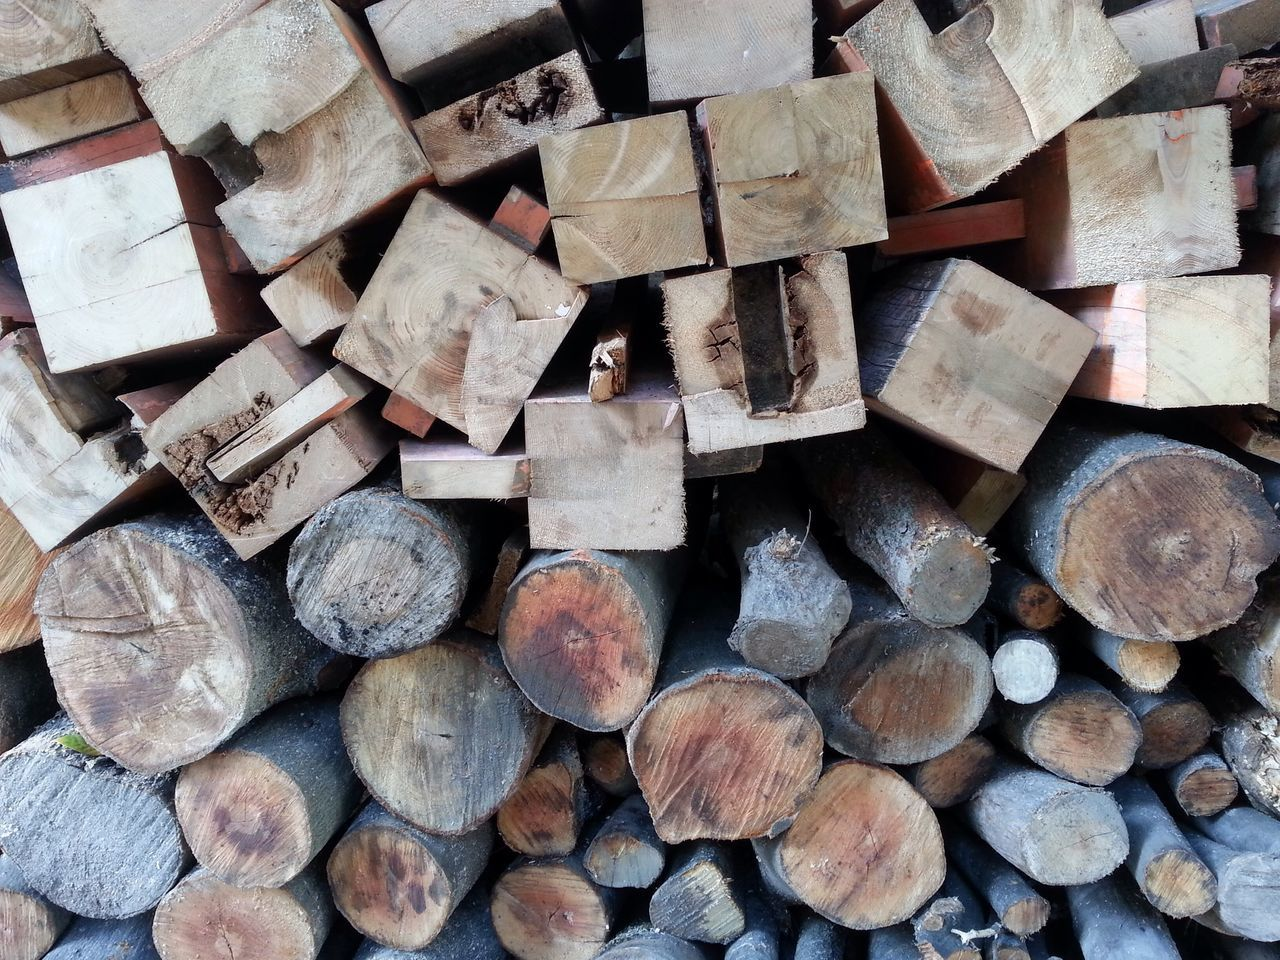 firewood, log, timber, woodpile, stack, forestry industry, lumber industry, wood - material, deforestation, shape, abundance, full frame, large group of objects, heap, backgrounds, environmental issues, textured, pile, no people, fuel and power generation, close-up, day, outdoors